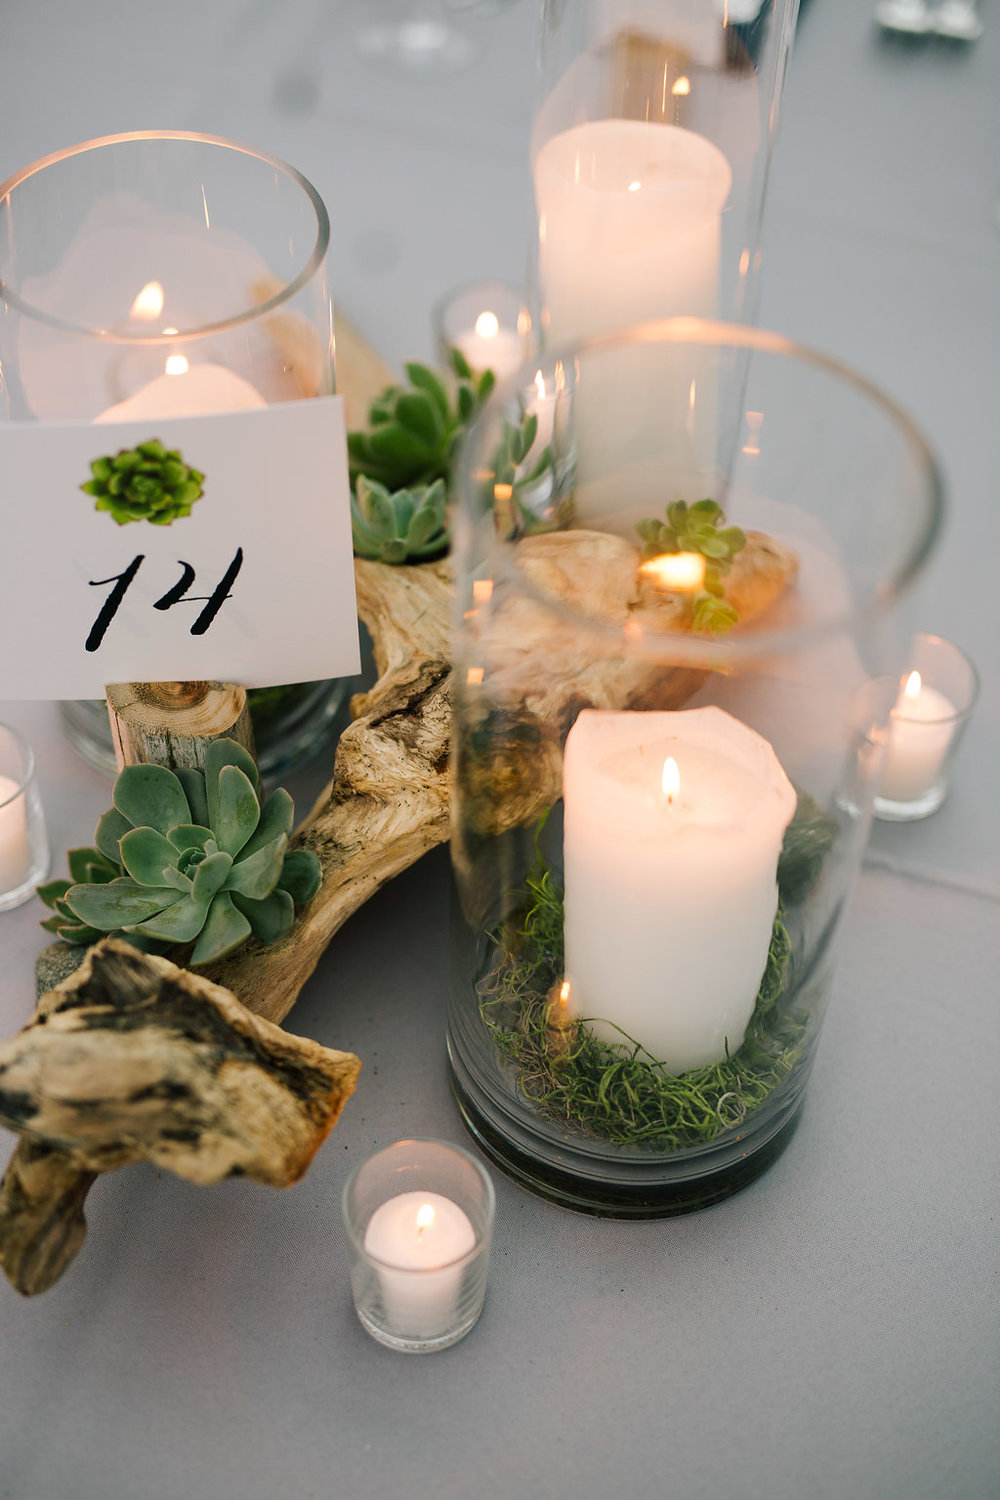 Succulent and Driftwood Centerpiece with Candles at Chihuly Garden and Glass Wedding